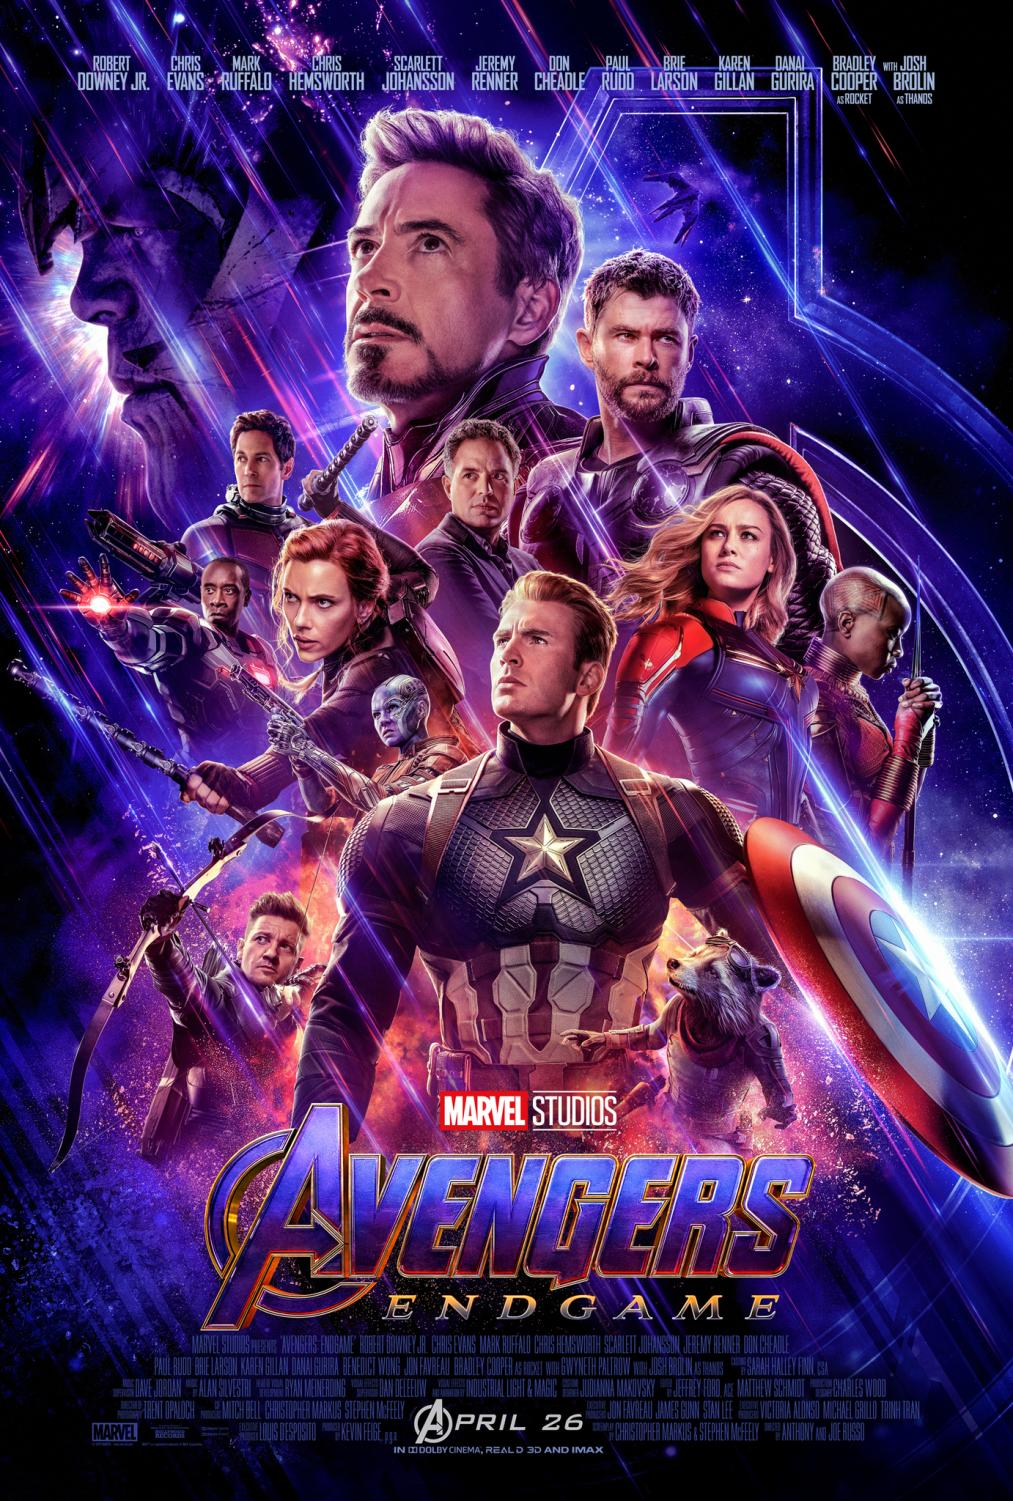 The cast of Avengers: Endgame all star in the the highly anticipated blockbuster that premieres Apr. 26.